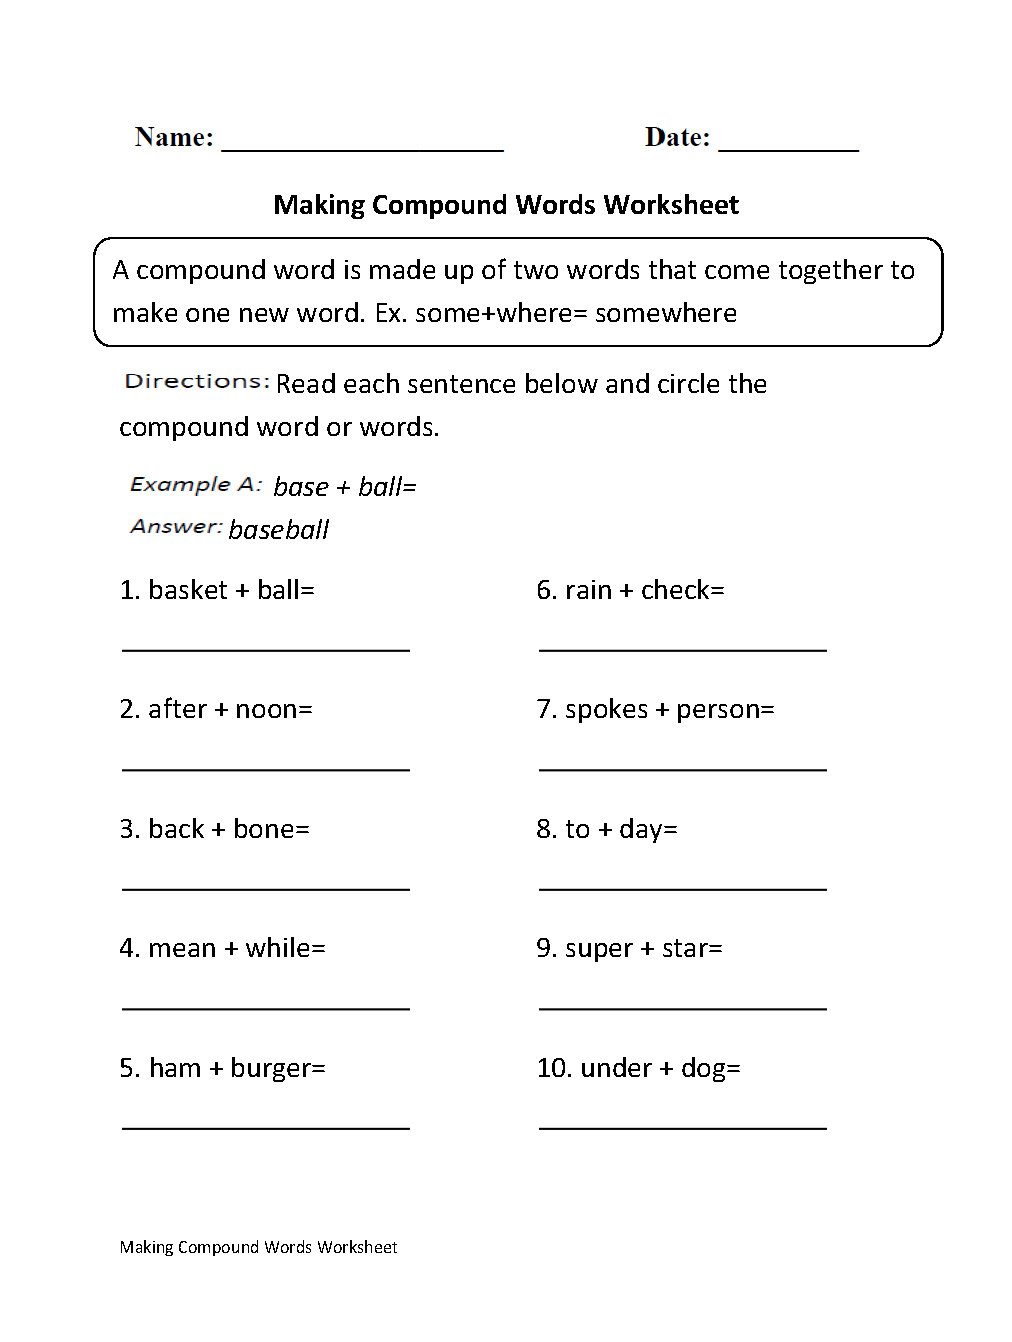 Workbooks year 7 spelling worksheets : Englishlinx.com | Compound Words Worksheets